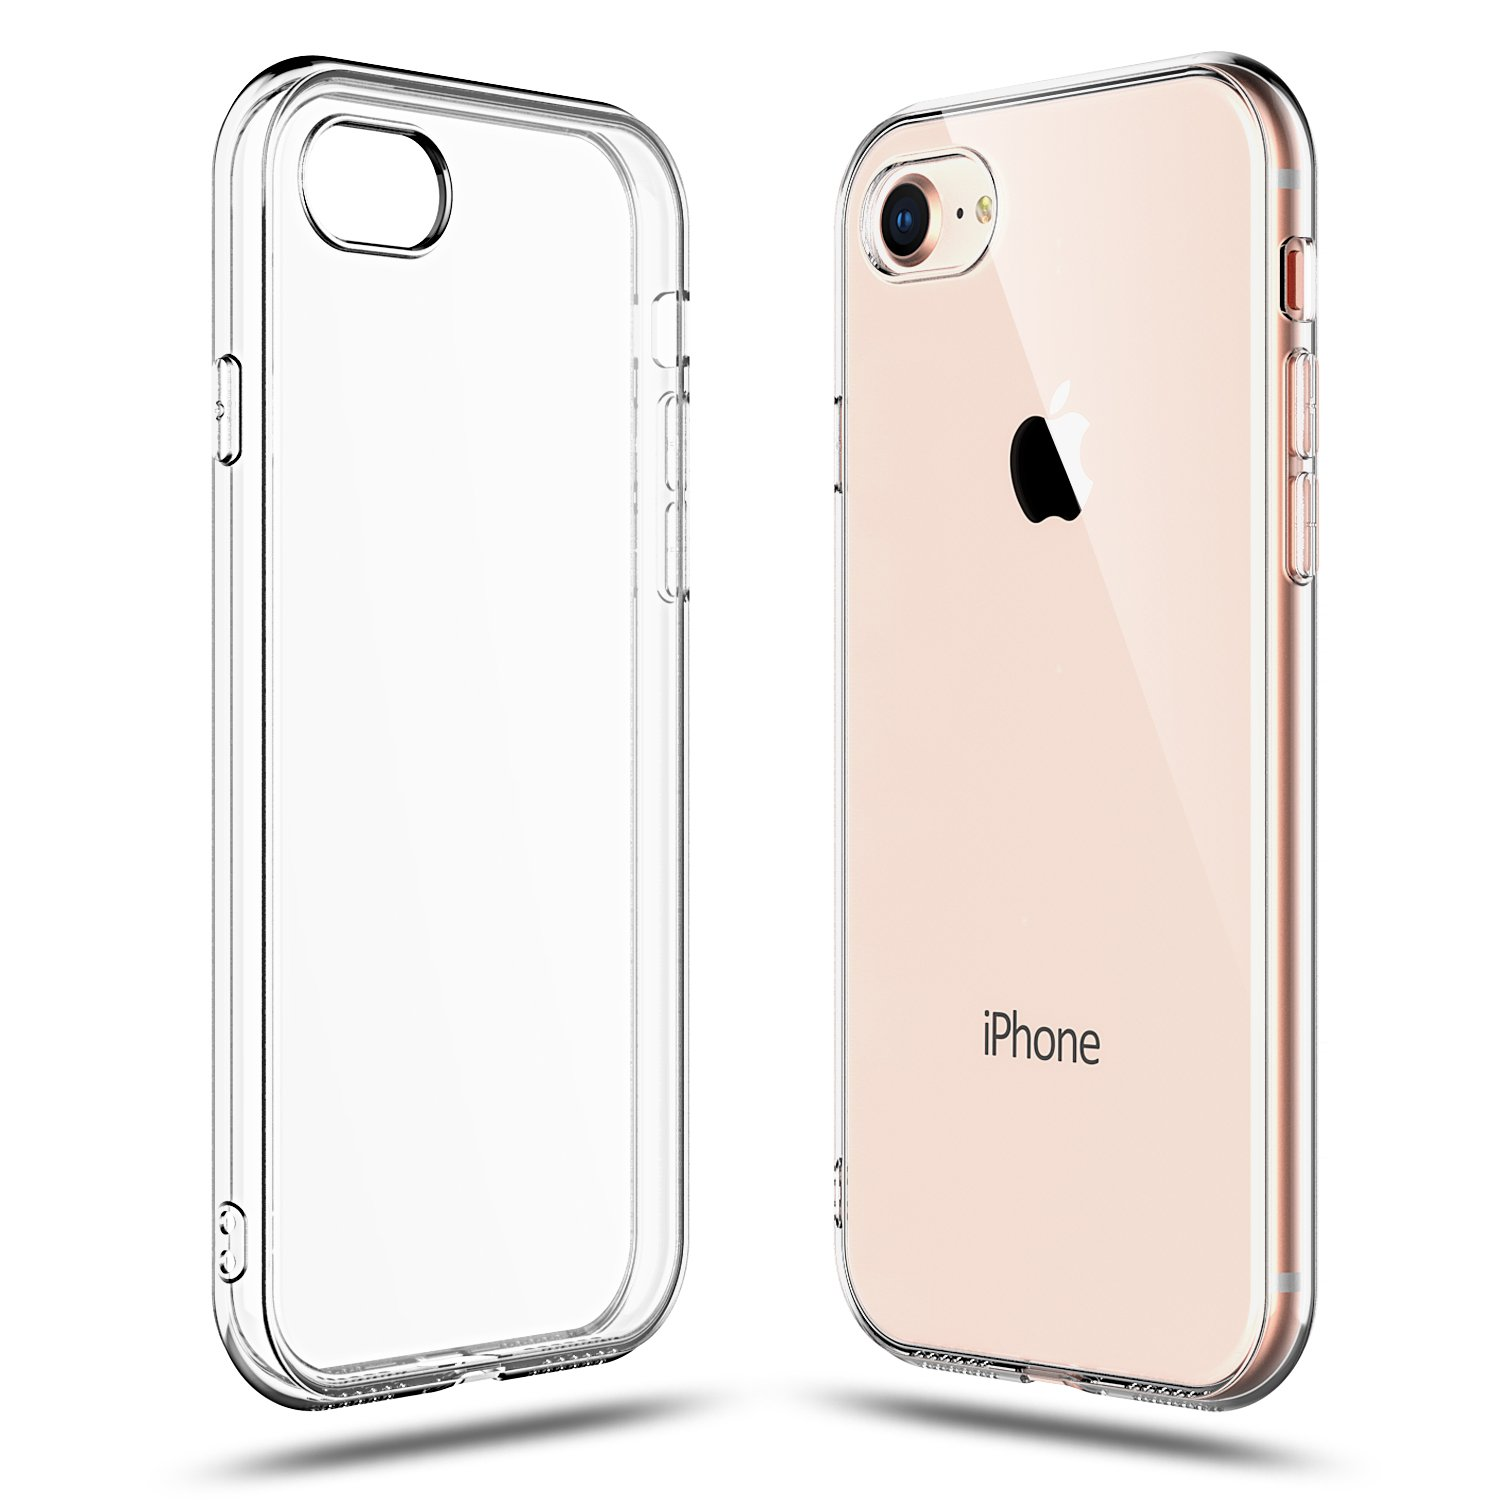 7 iphone clear cases